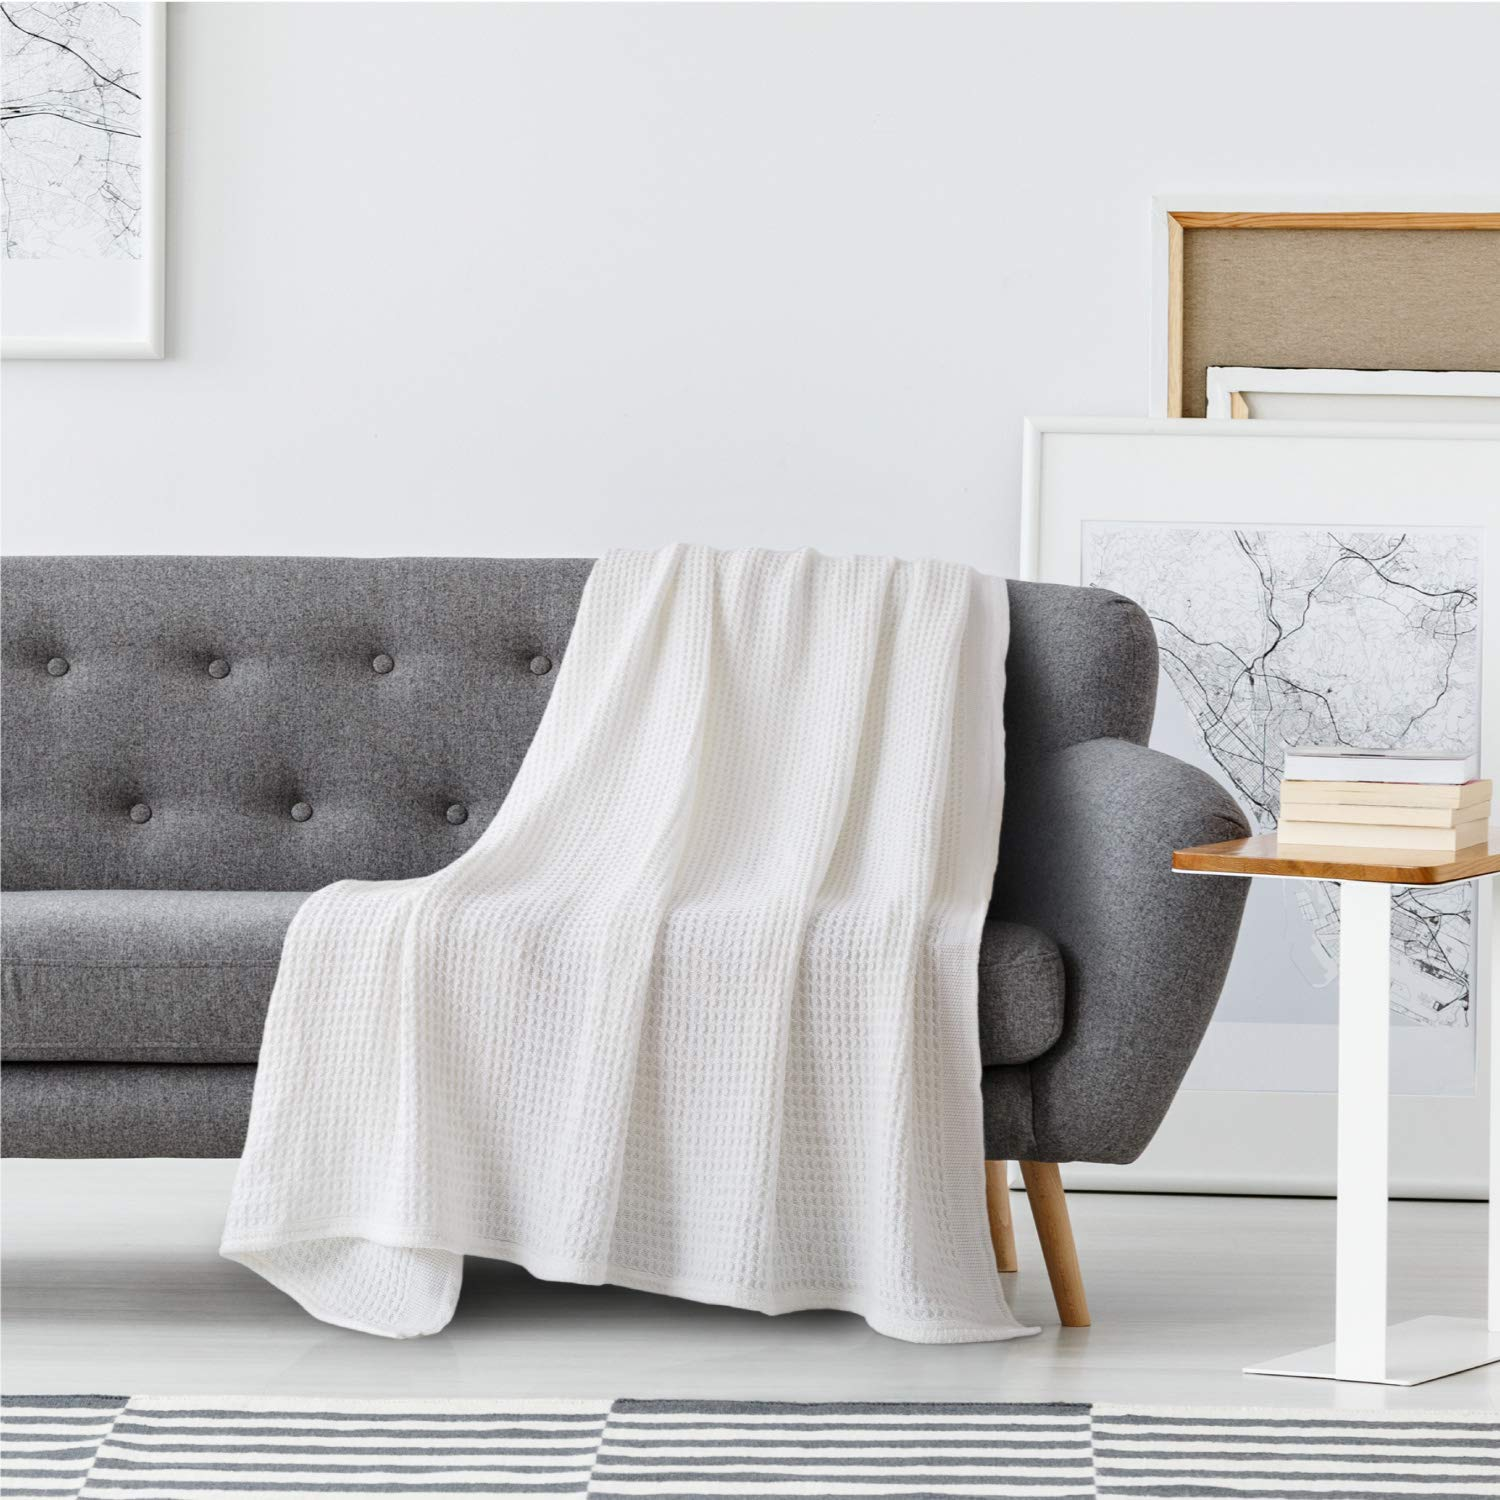 8 Best Thermal, Queen Size Blankets for Summer